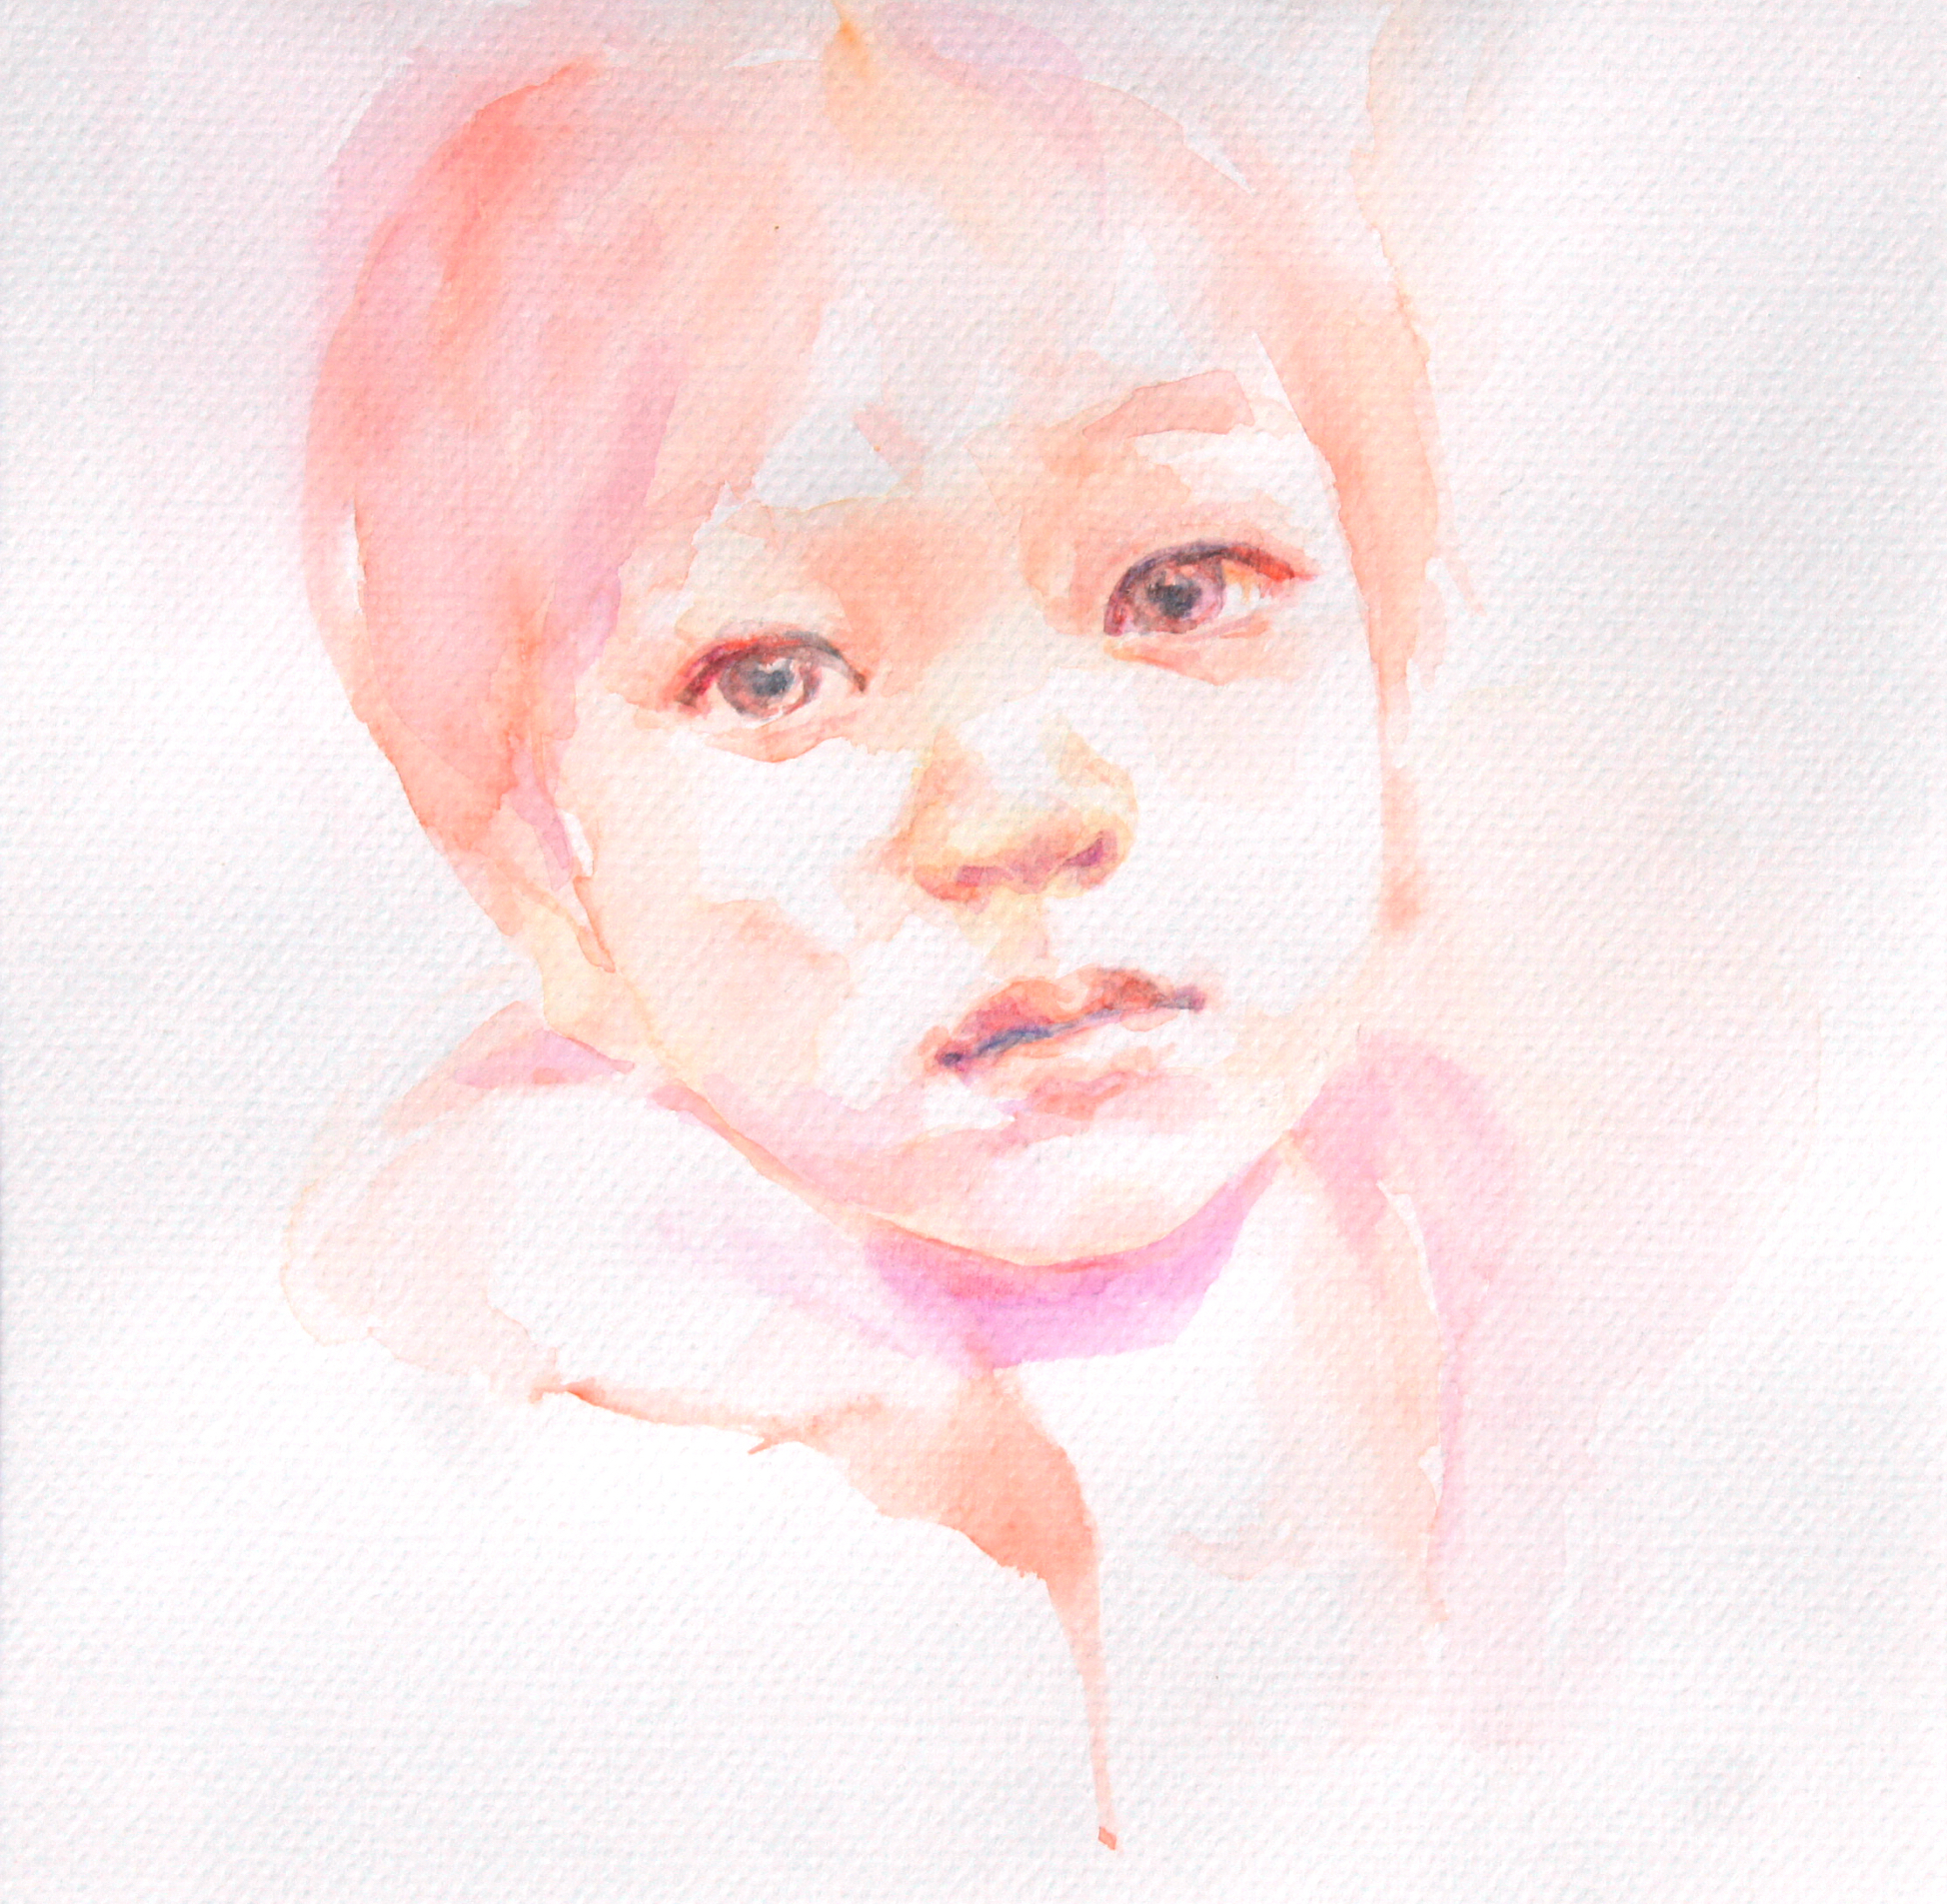 8_Staring Game_19x19_Watercolor on Paper.jpg